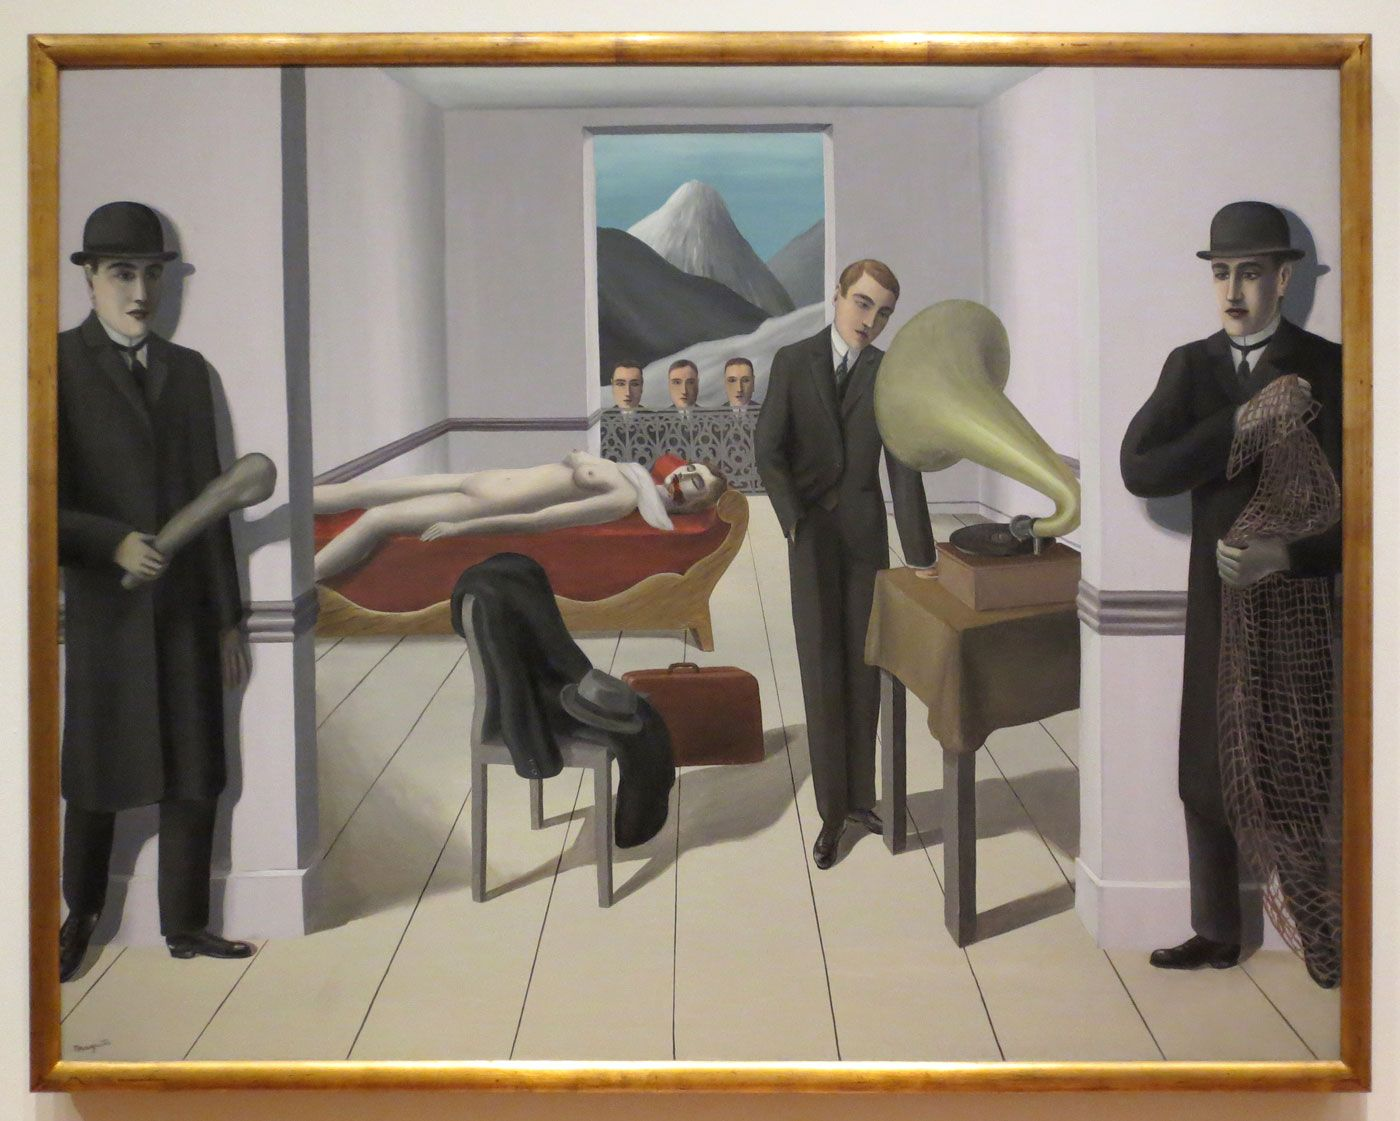 René Magritte, The Menaced Assassin, 1927, The Museum of Modern Art, New York